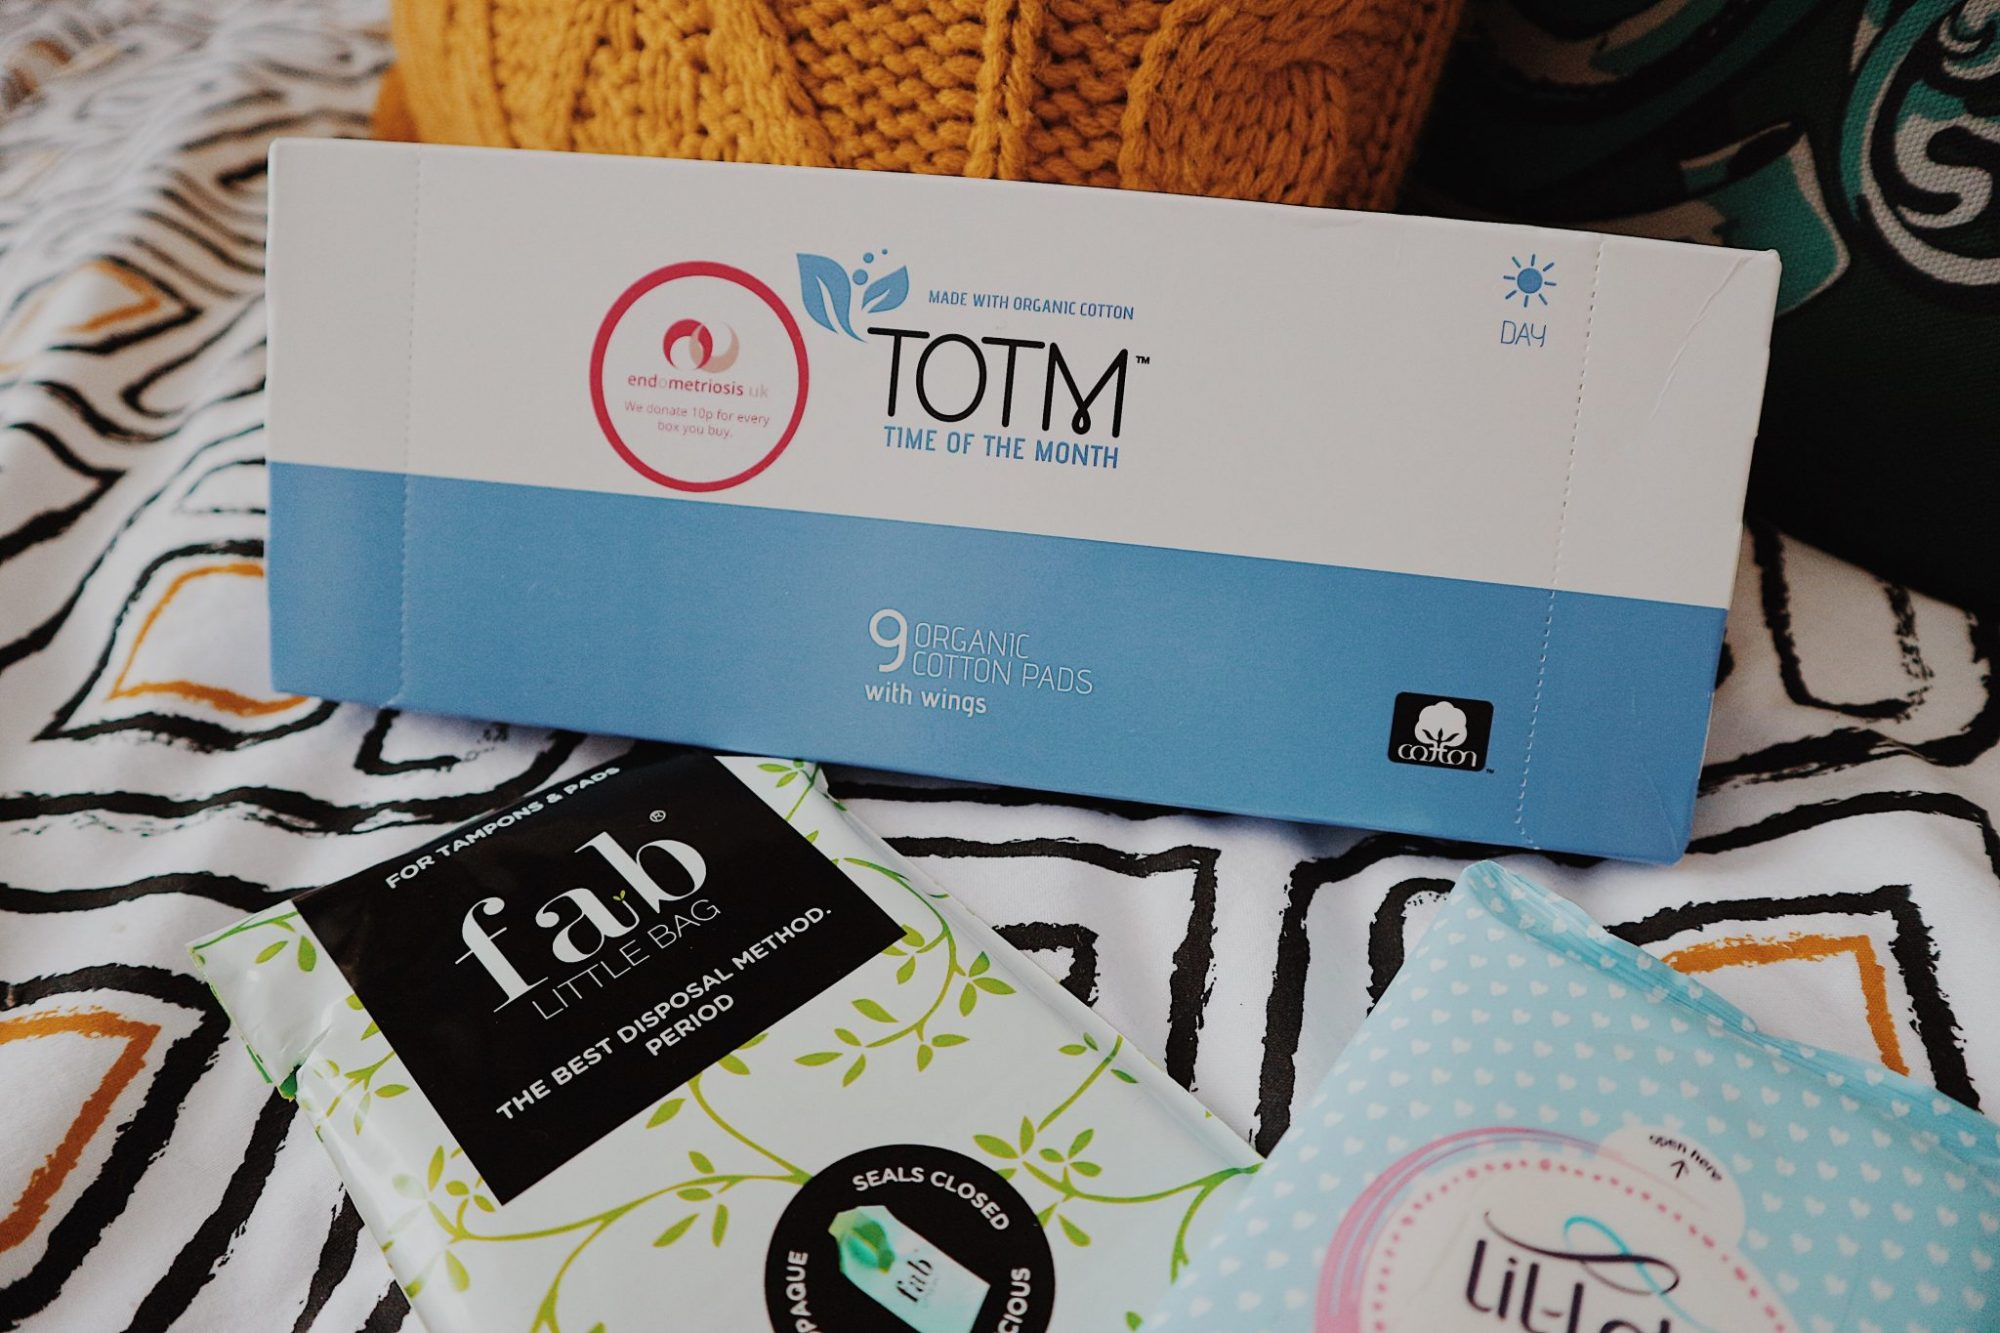 TOTM Products